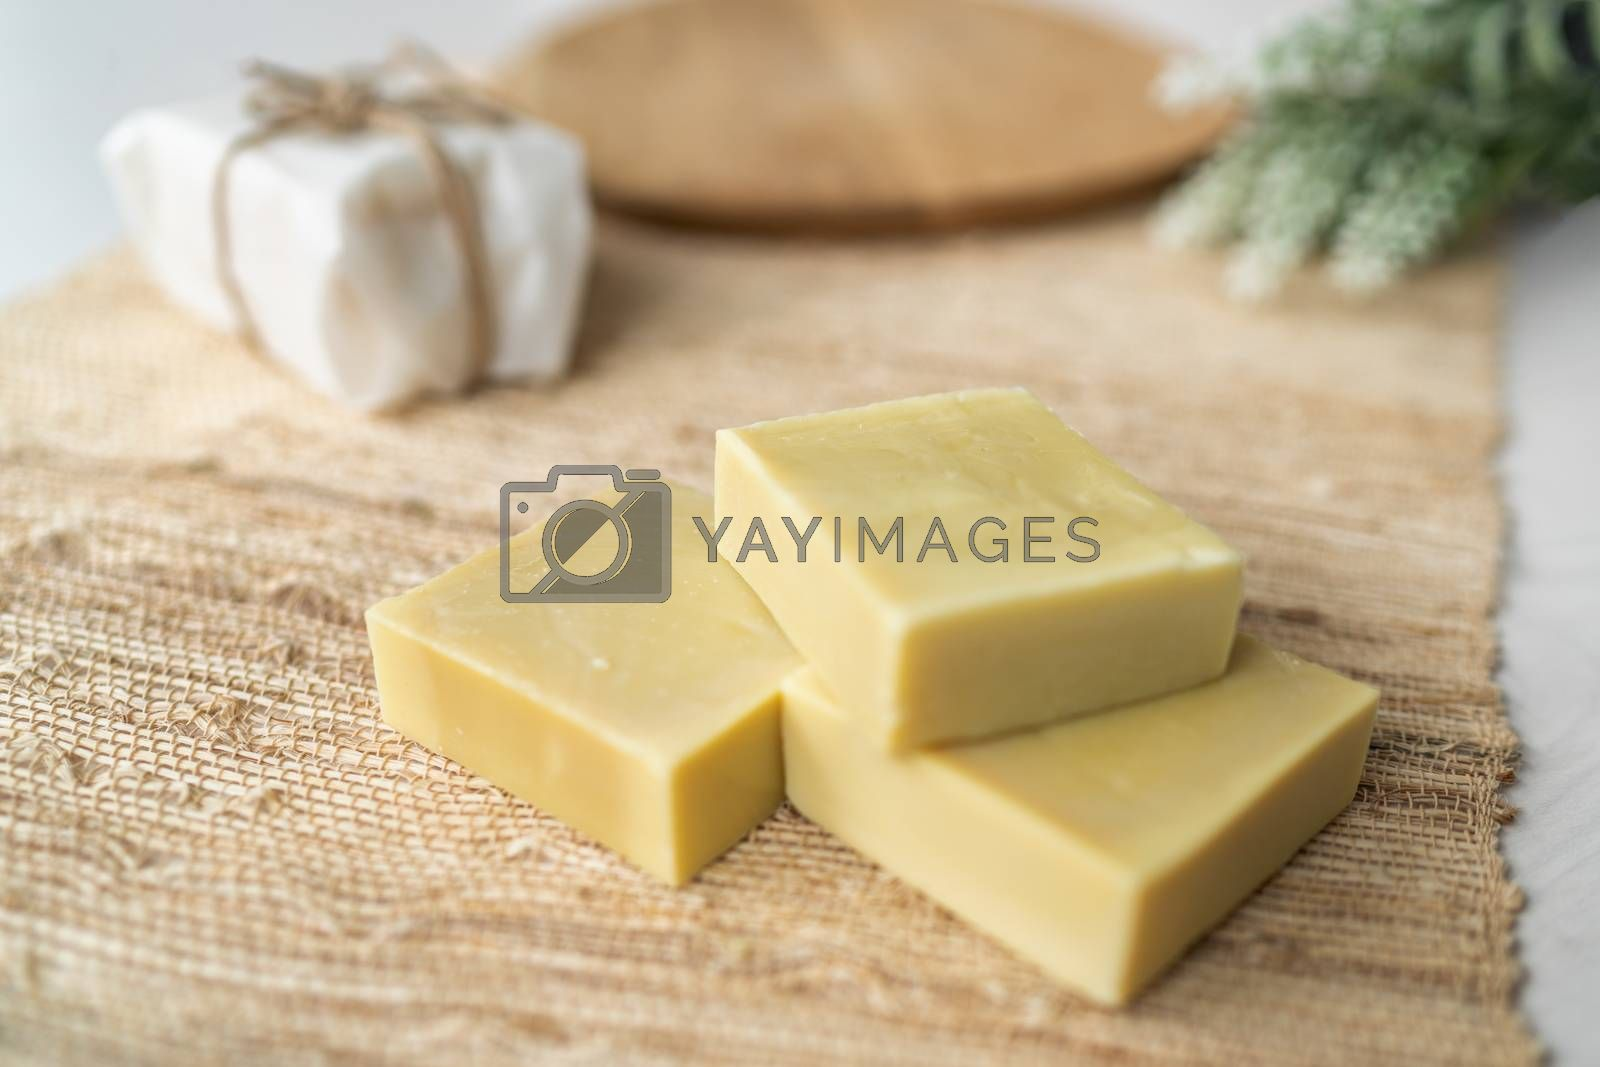 Handmade natural olive oil soap bars DIY homemade soap with lavender essentail oils - activity for what to do inside at home. Top view on decorative background.